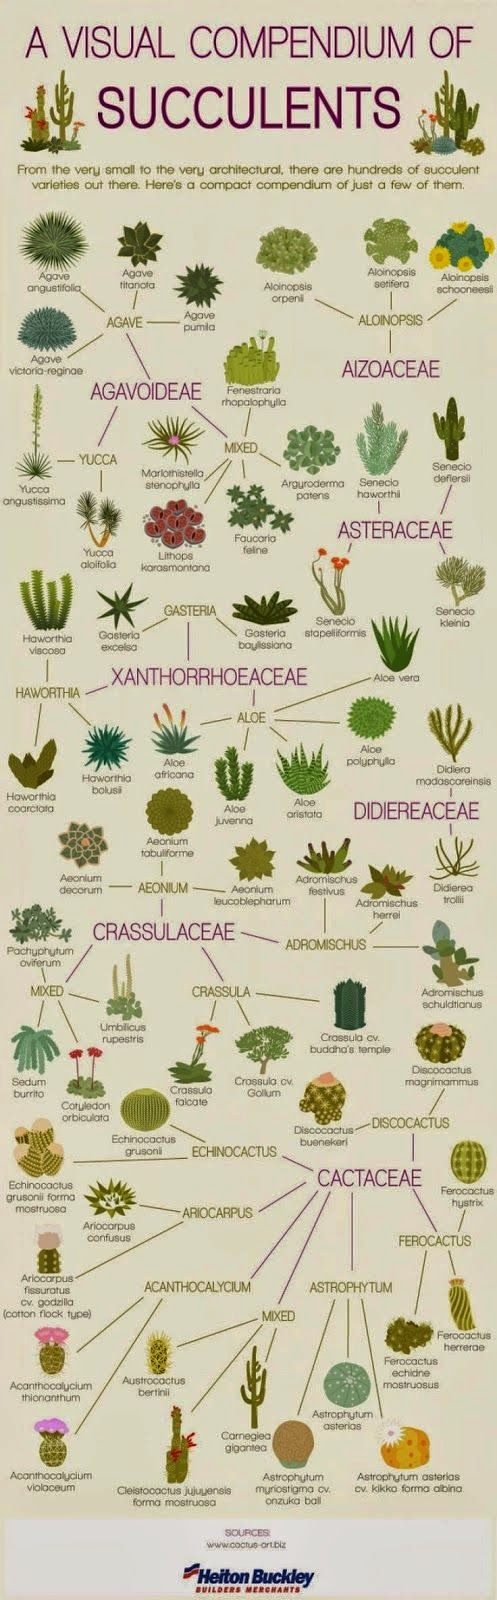 A Visual Compendium of Succulents...